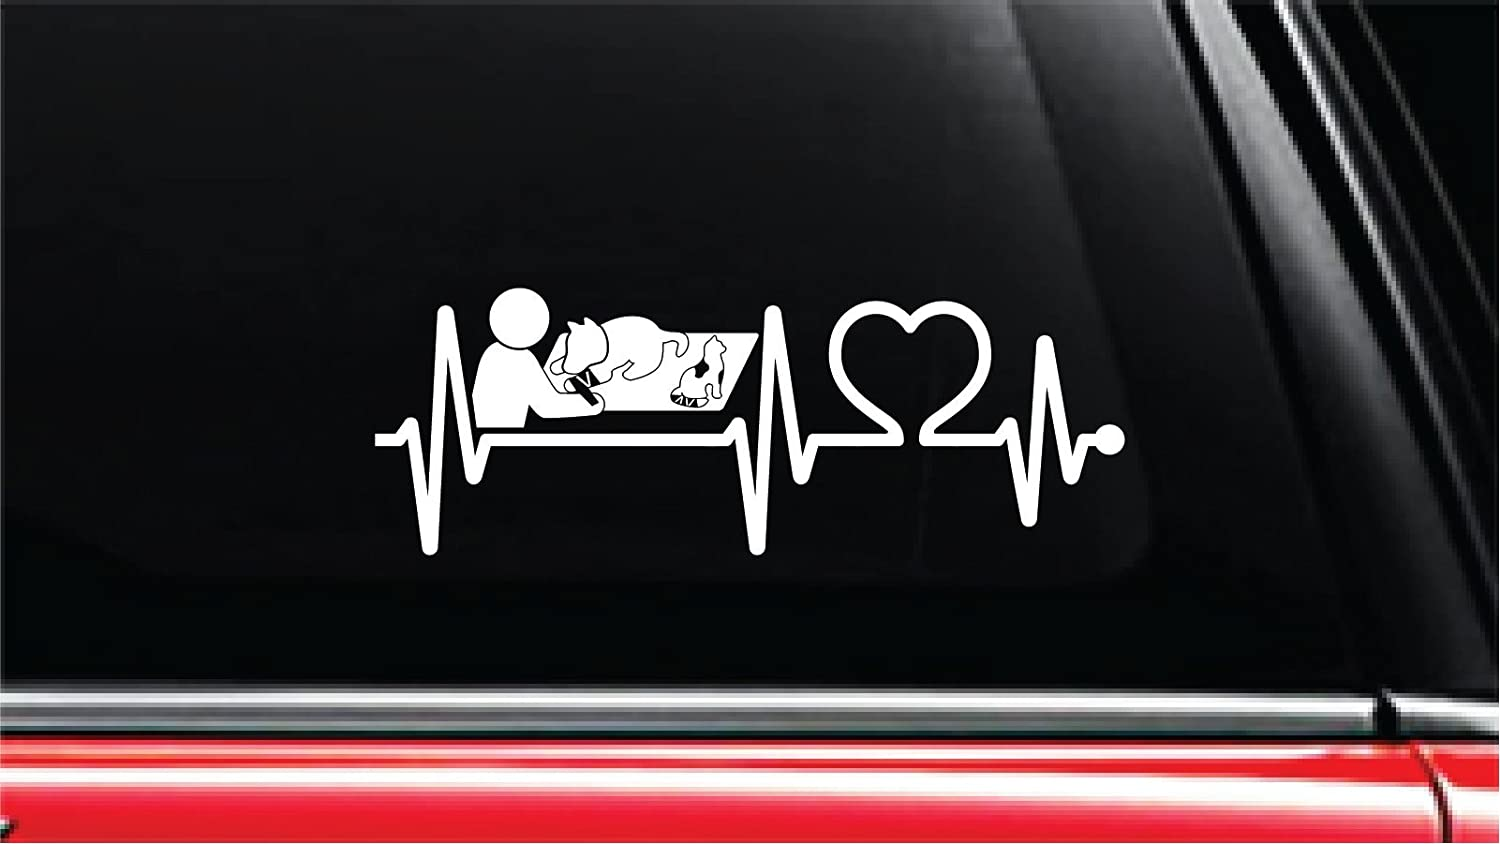 Computer Or Window Notebook Laptop 8, White Veterinary Physician Heartbeat Lifeline Vinyl Die-Cut Decal Sticker for Car Truck